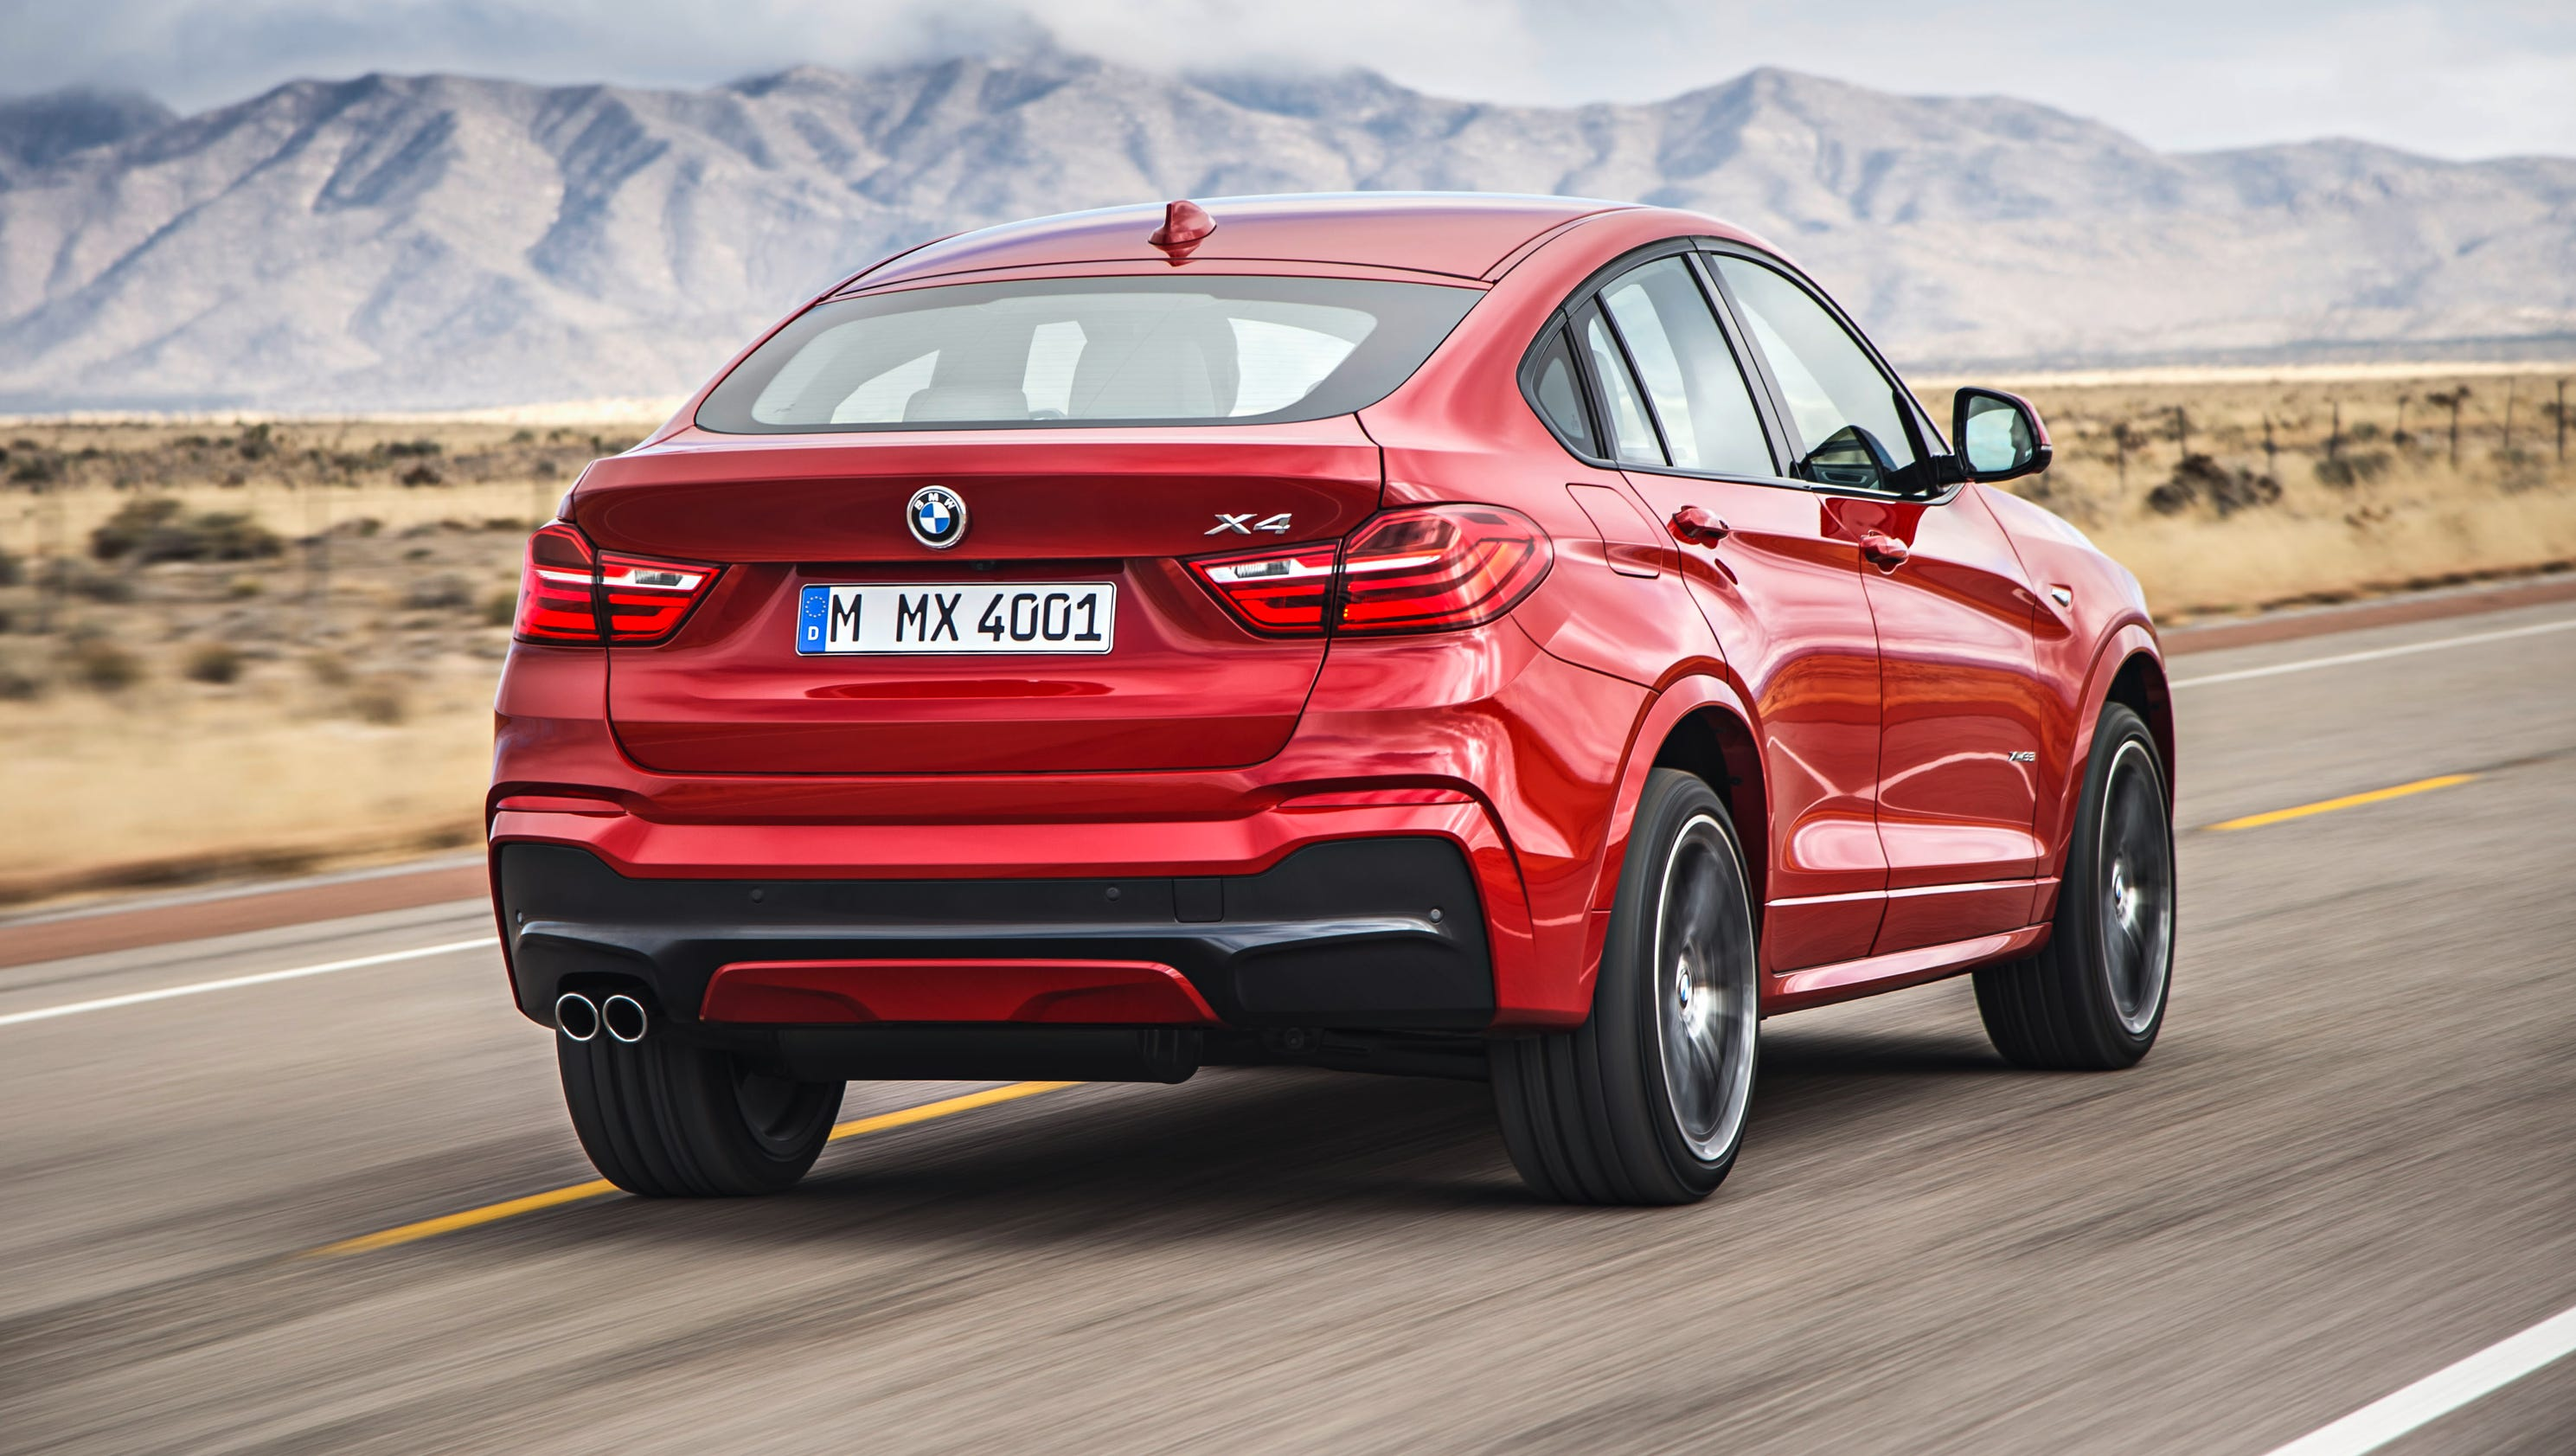 test drive bmw x4 marries car suv. Black Bedroom Furniture Sets. Home Design Ideas